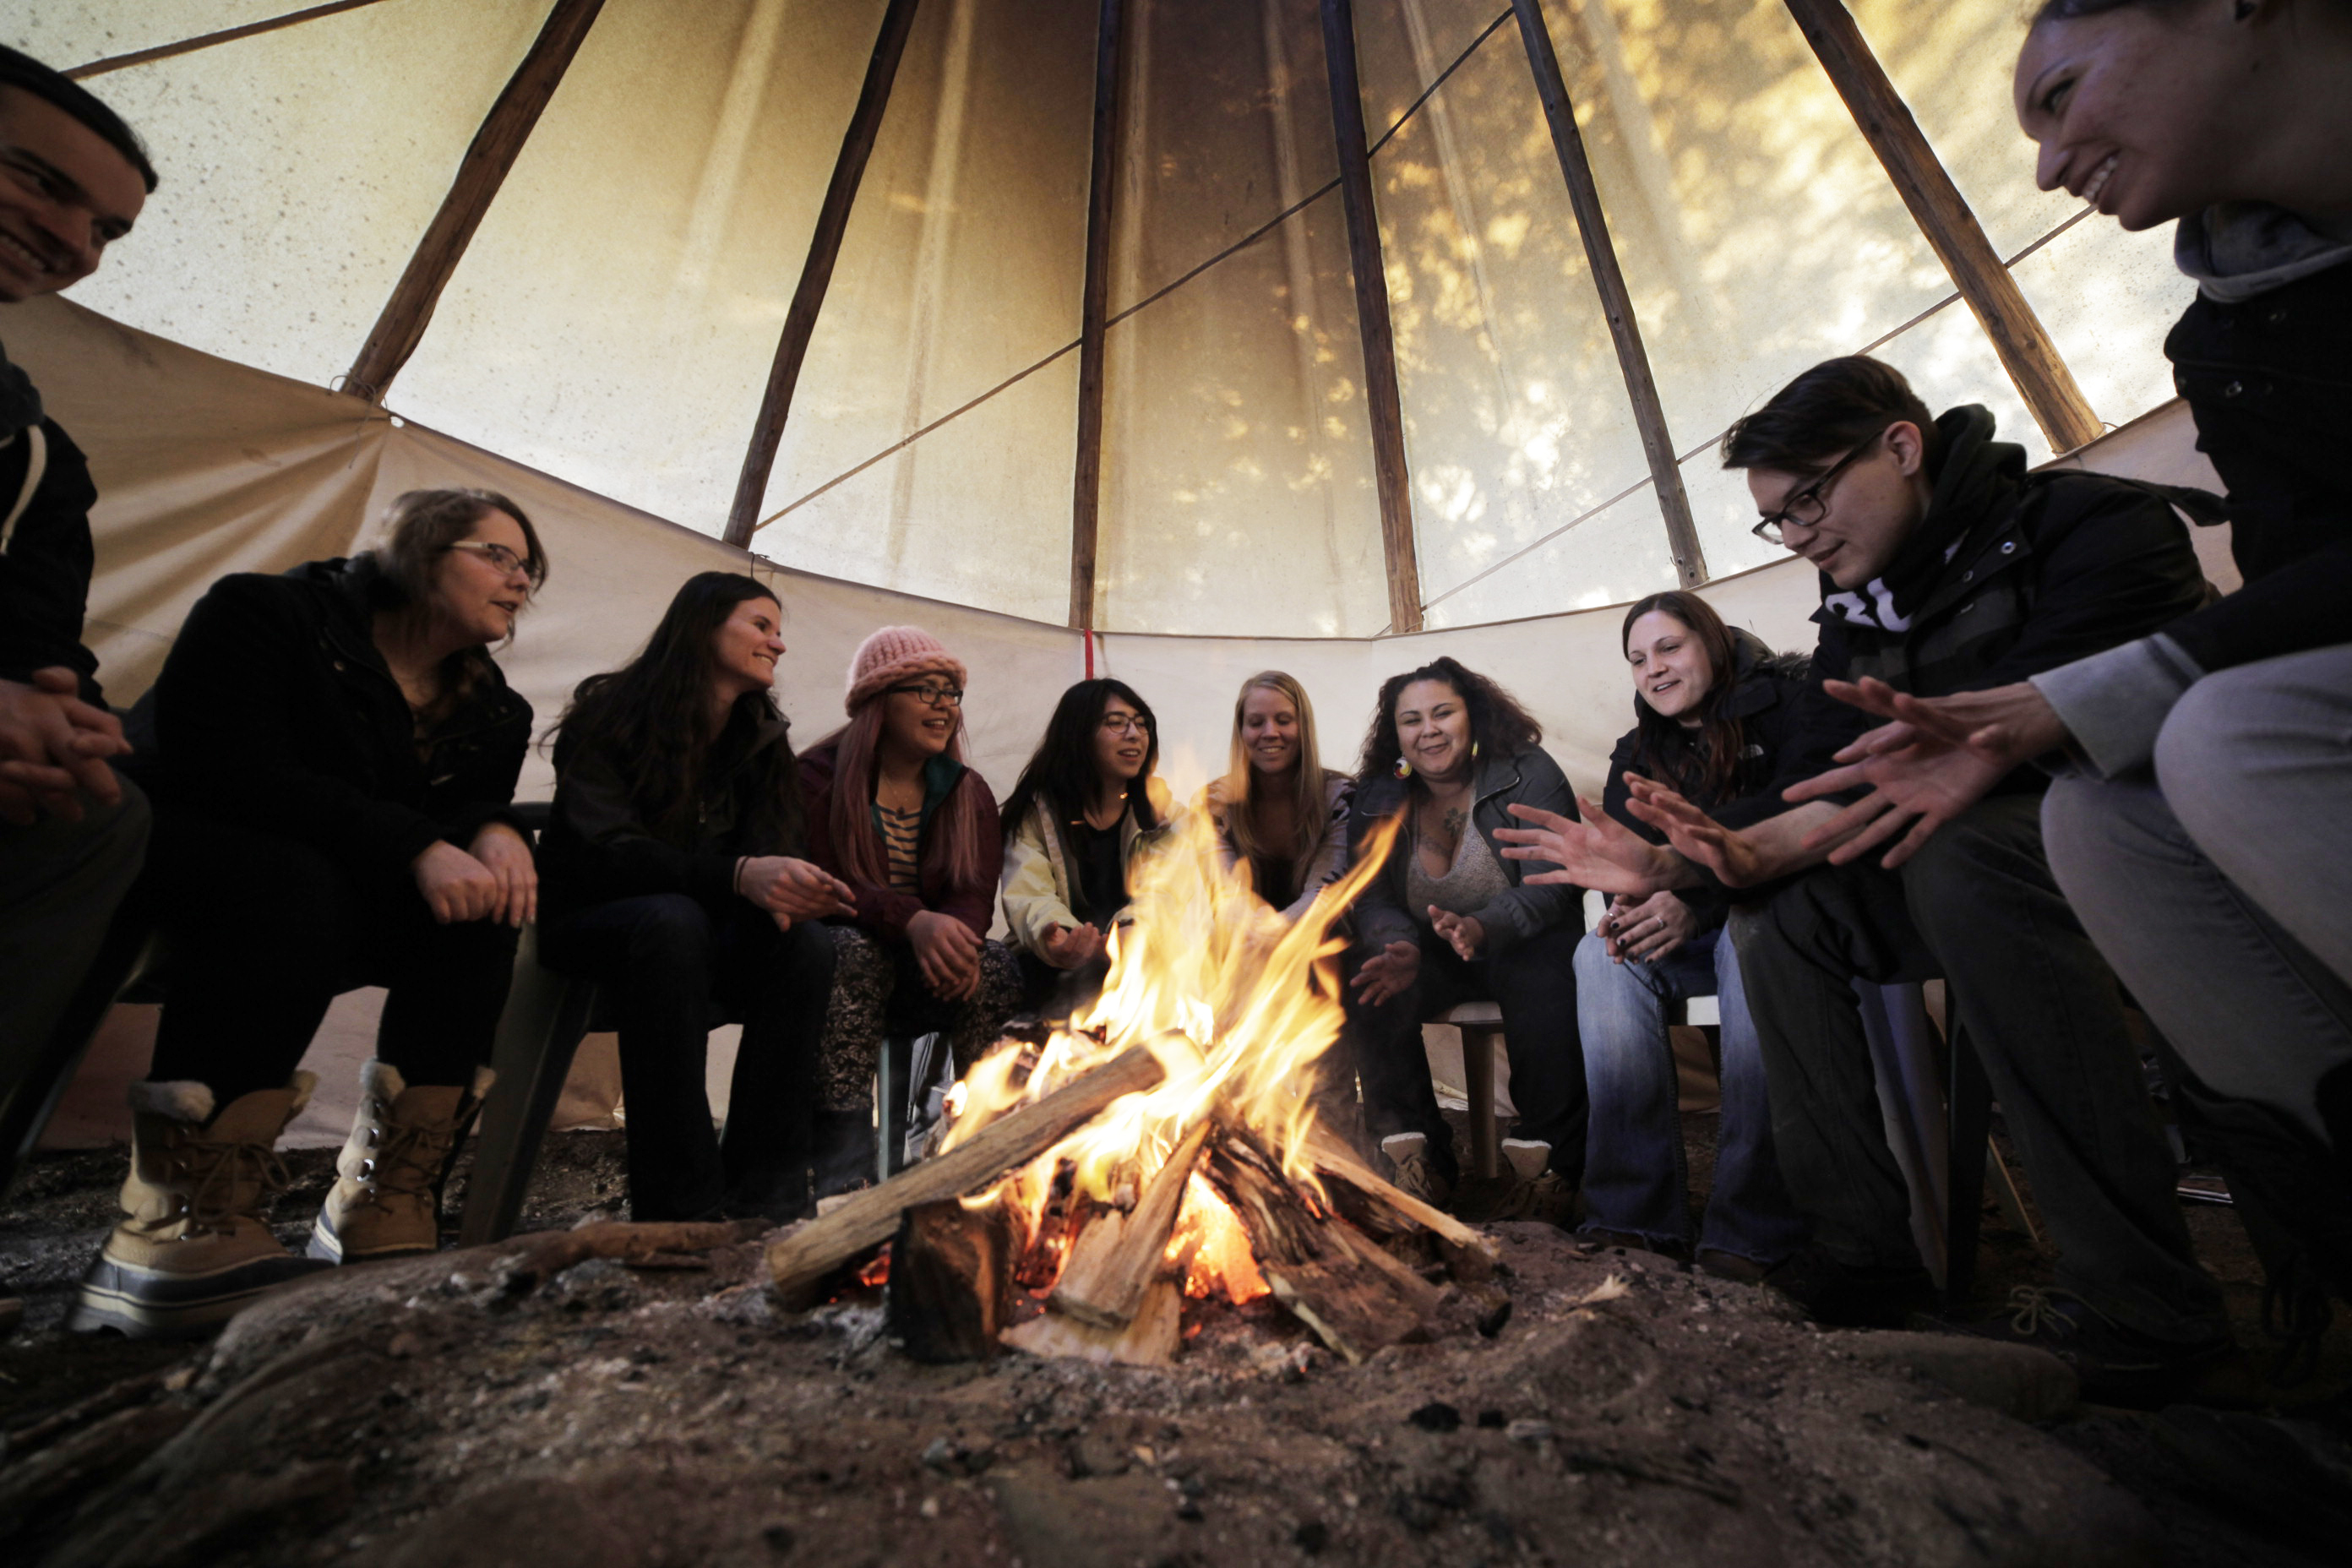 A group of individuals sitting around a fire